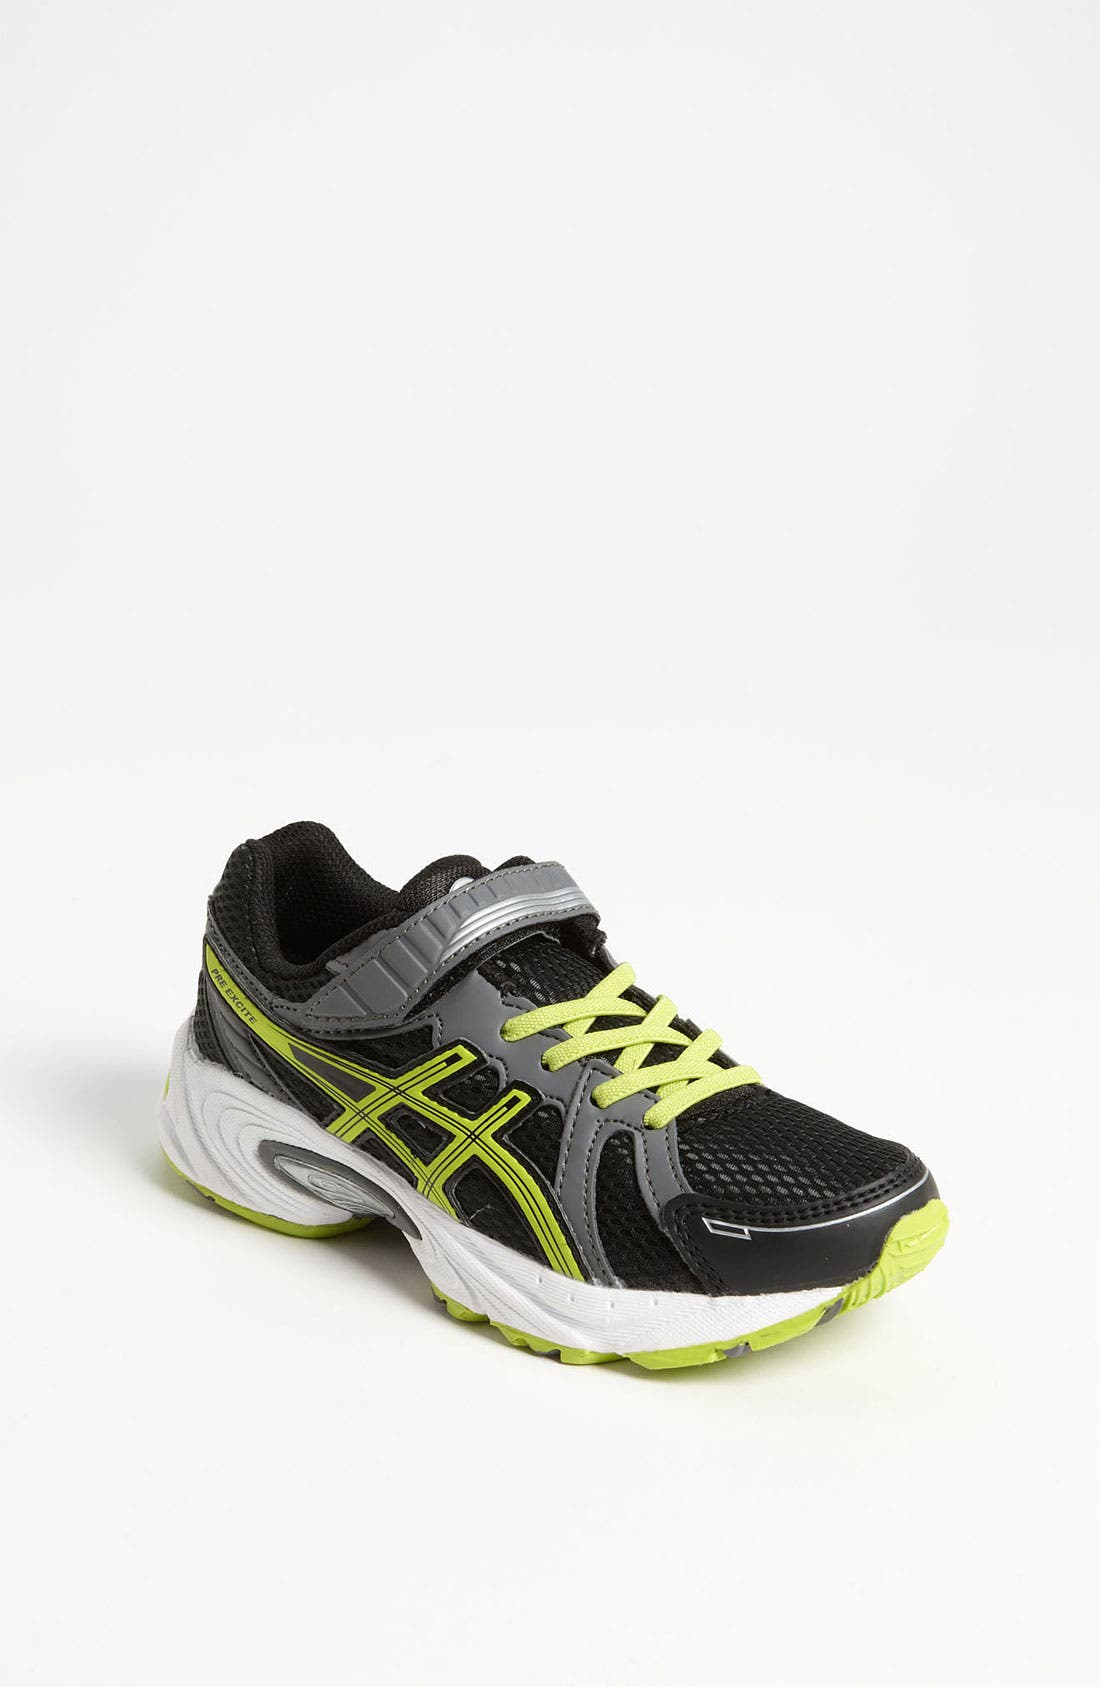 Main Image - ASICS® 'PRE-Excite™ PS' Sneaker (Toddler & Little Kid)